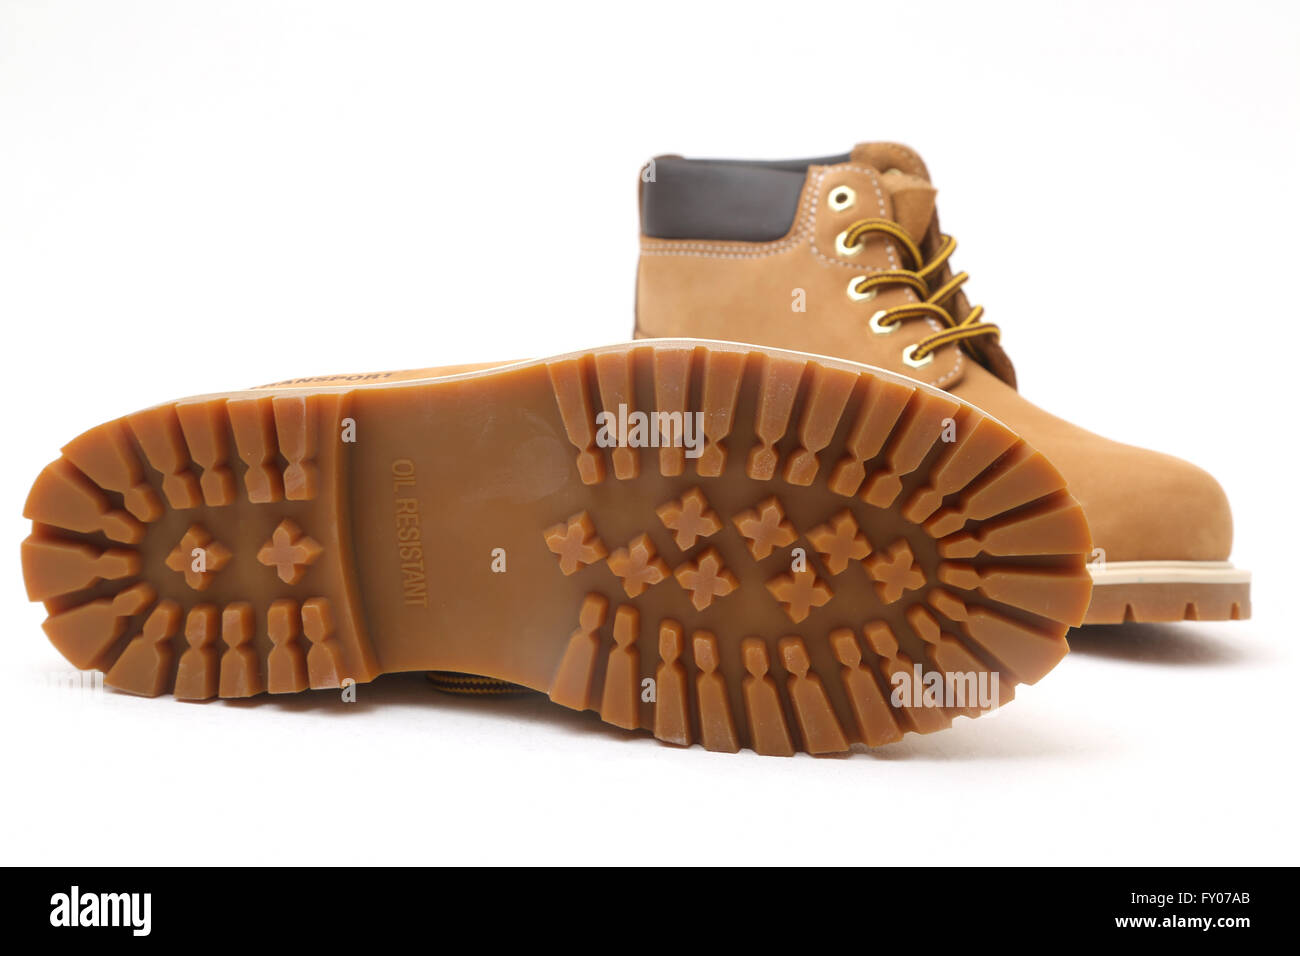 Transport Leather Boots Showing Oil Resistant Tread - Stock Image